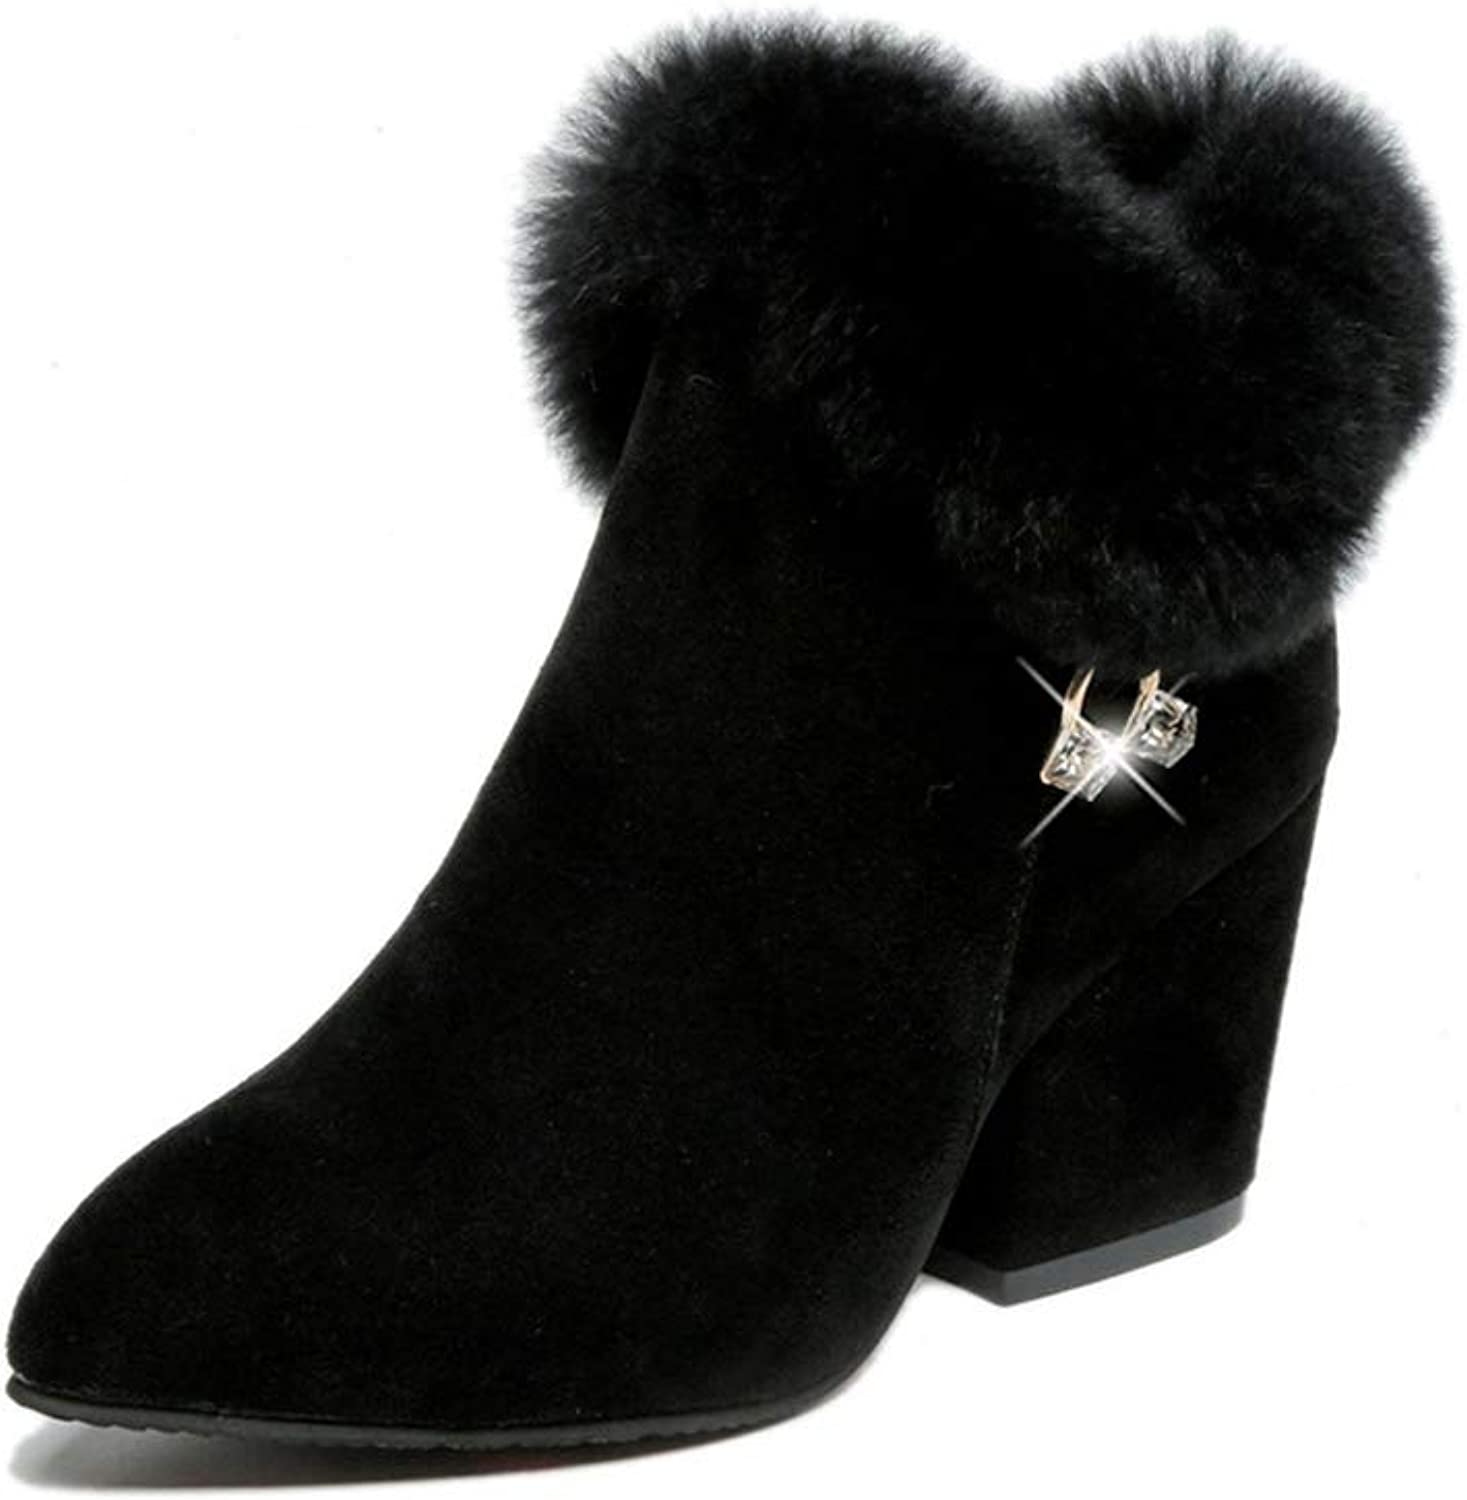 High-Heeled Ankle Boots Female Winter Thick with Rhinestones Furry Martin Boots